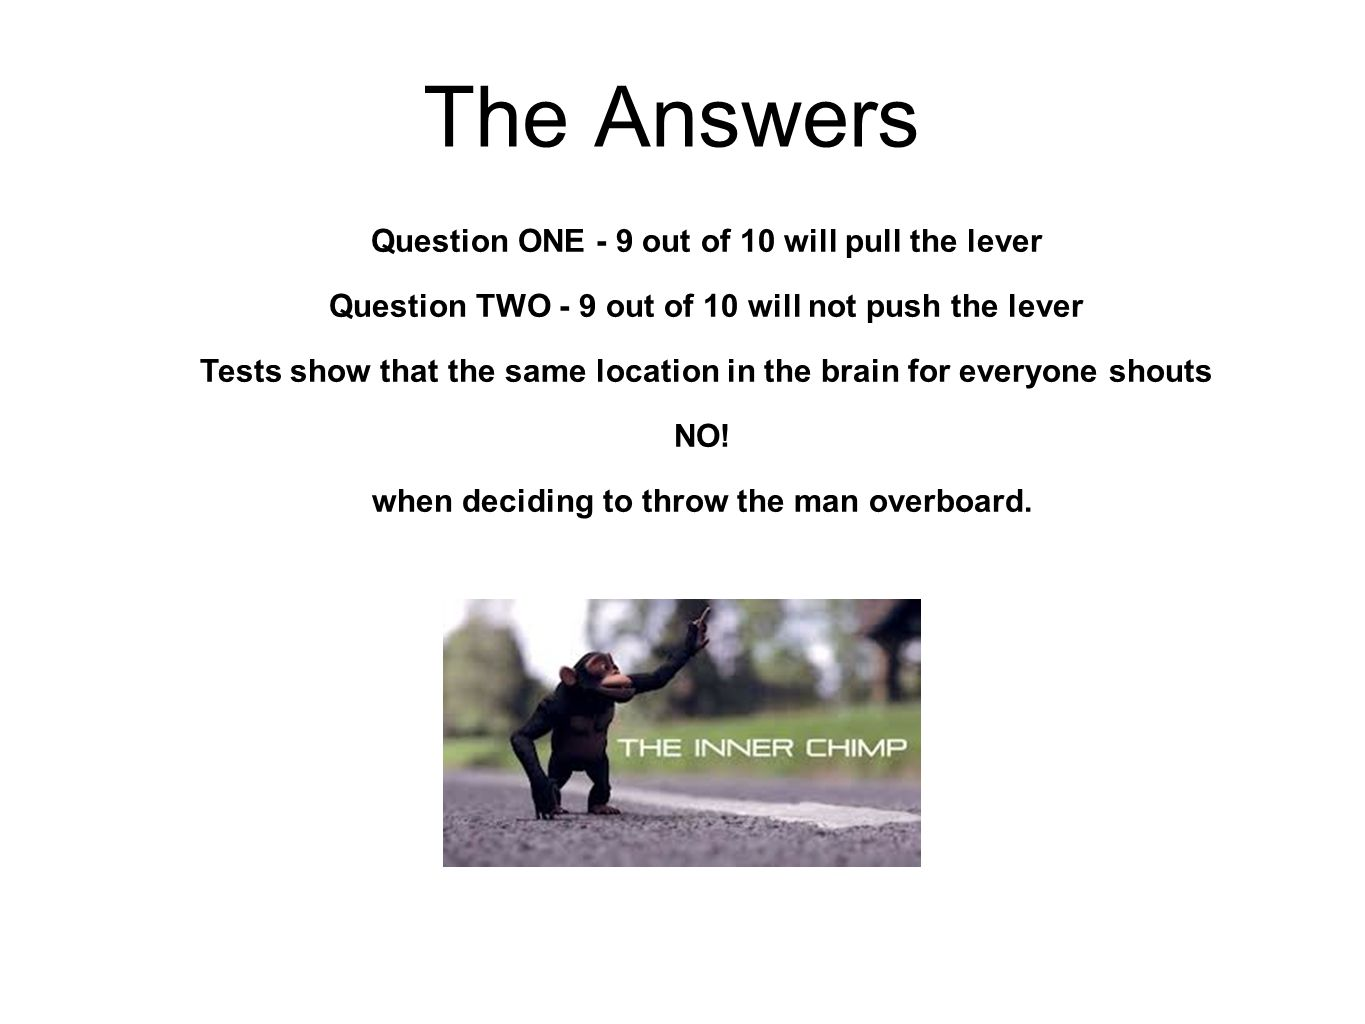 The Answers Question ONE - 9 out of 10 will pull the lever Question TWO - 9 out of 10 will not push the lever Tests show that the same location in the brain for everyone shouts NO.